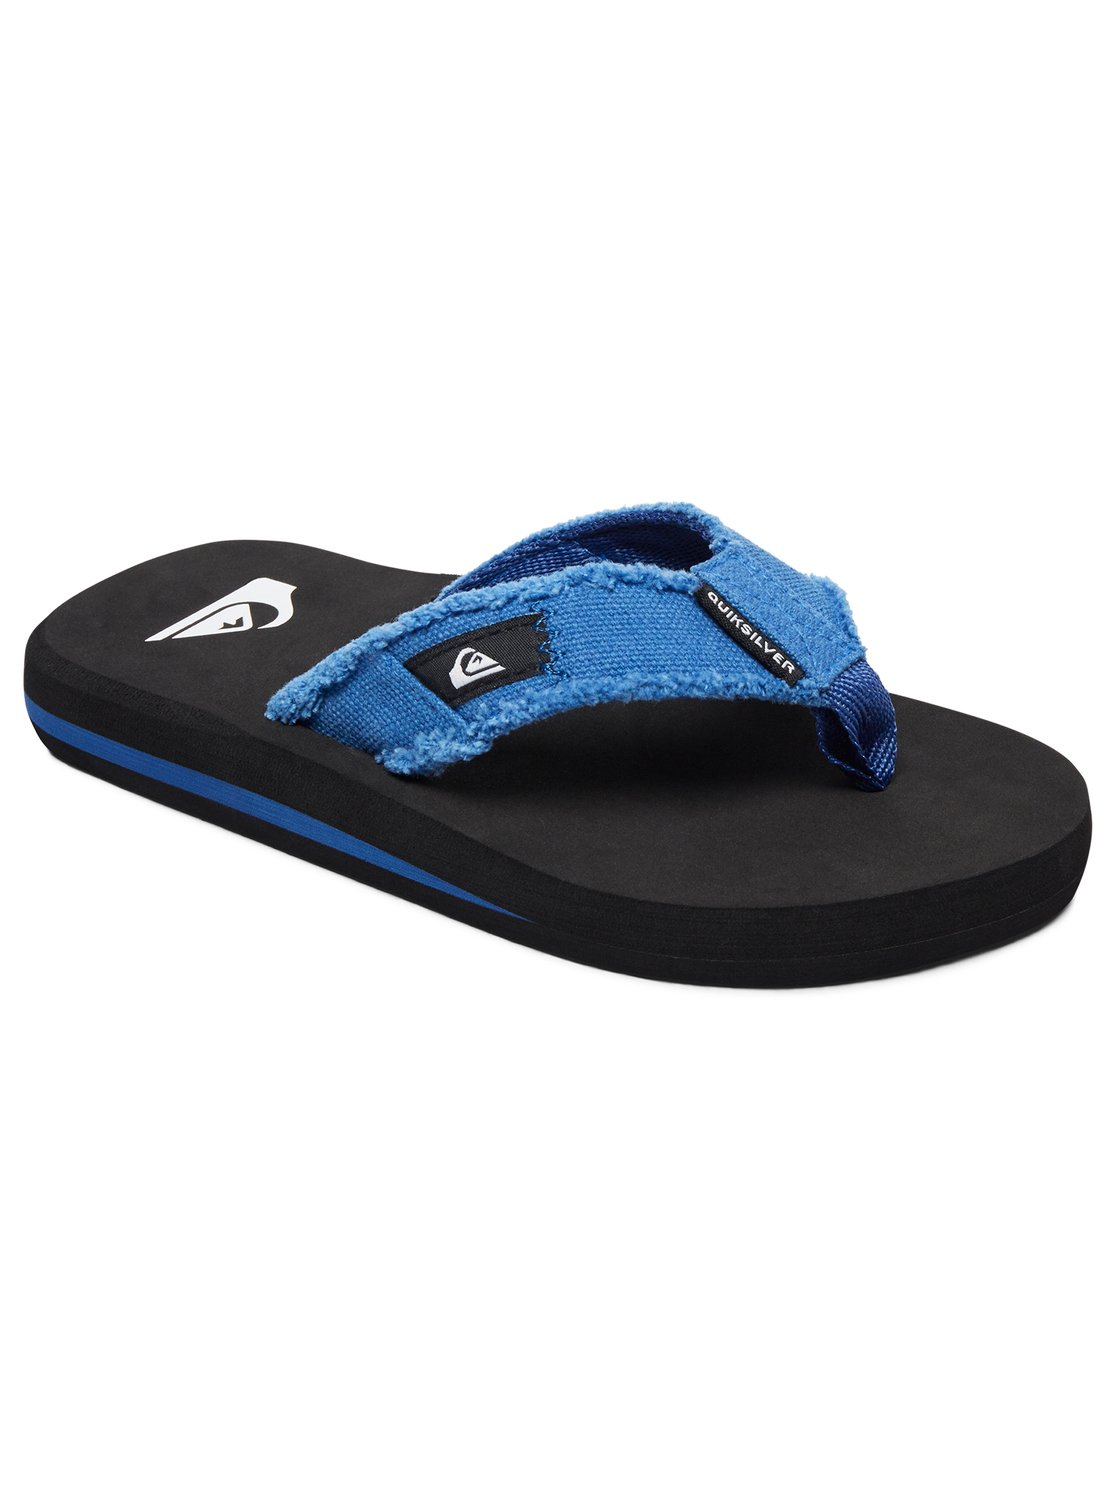 9cff1969a880 0 Monkey Abyss - Sandals for Boys Blue AQBL100010 Quiksilver